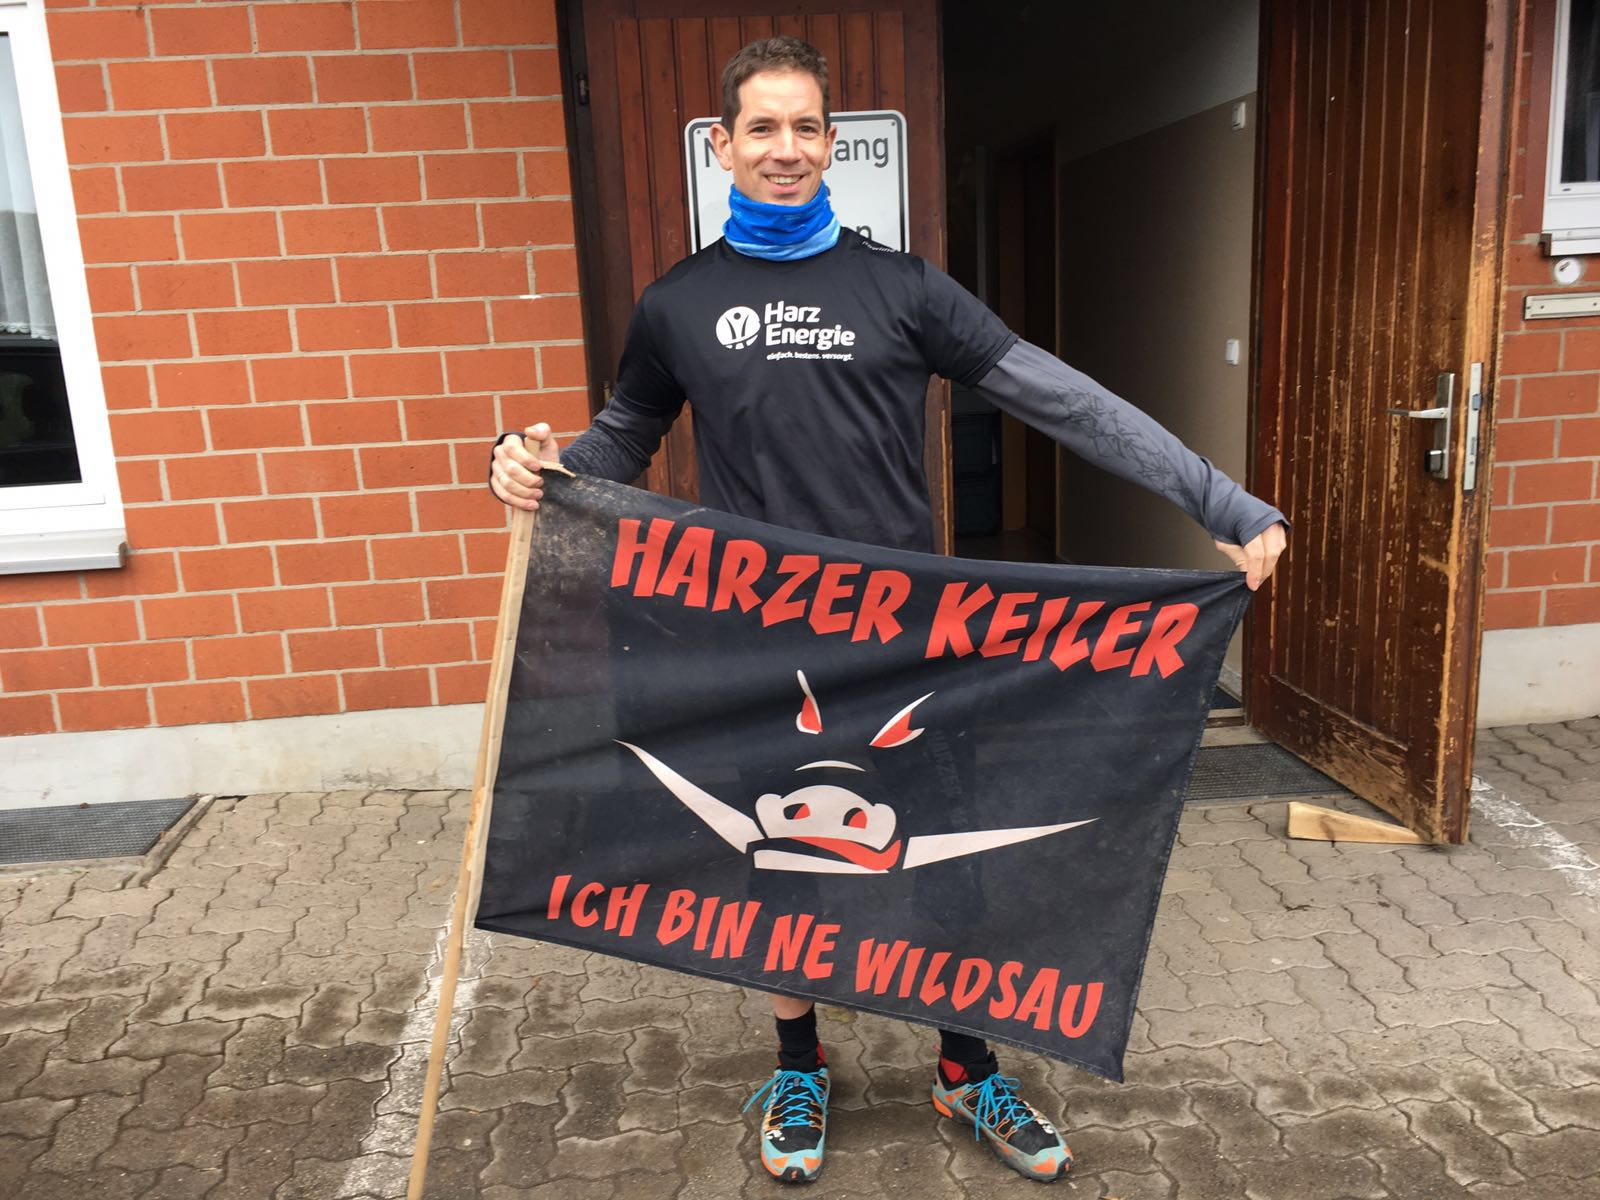 Harzer Keiler Training - Carboo4U - carboo-shop-de - Anbaden_david